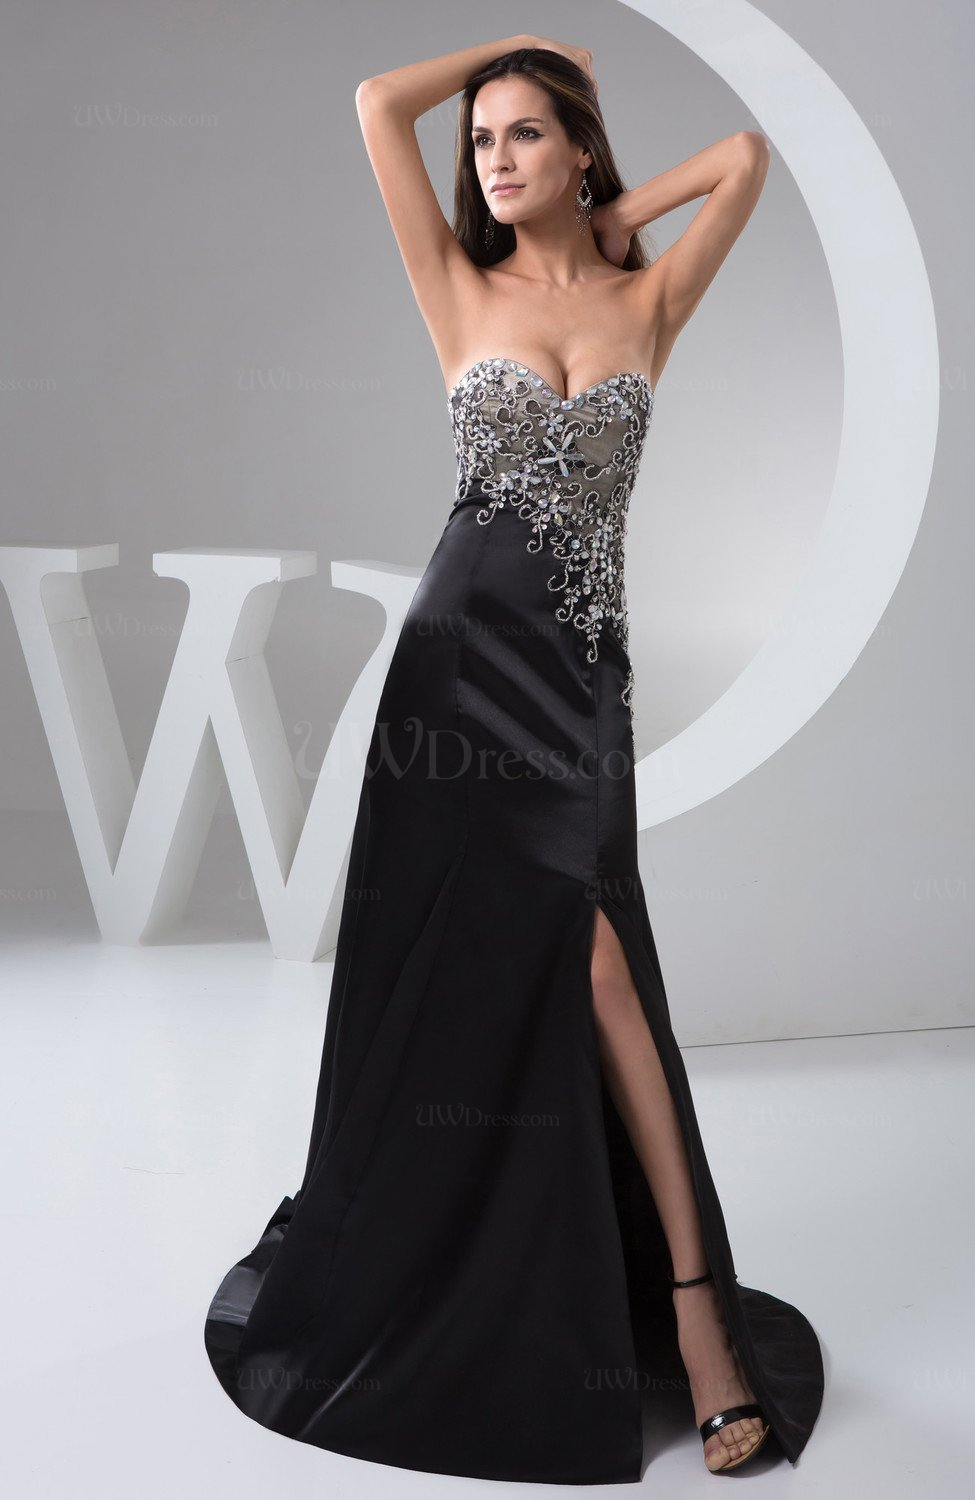 Black Unique Club Dress Long Luxury Allure Fashion Sleeveless Modern Natural - UWDress.com